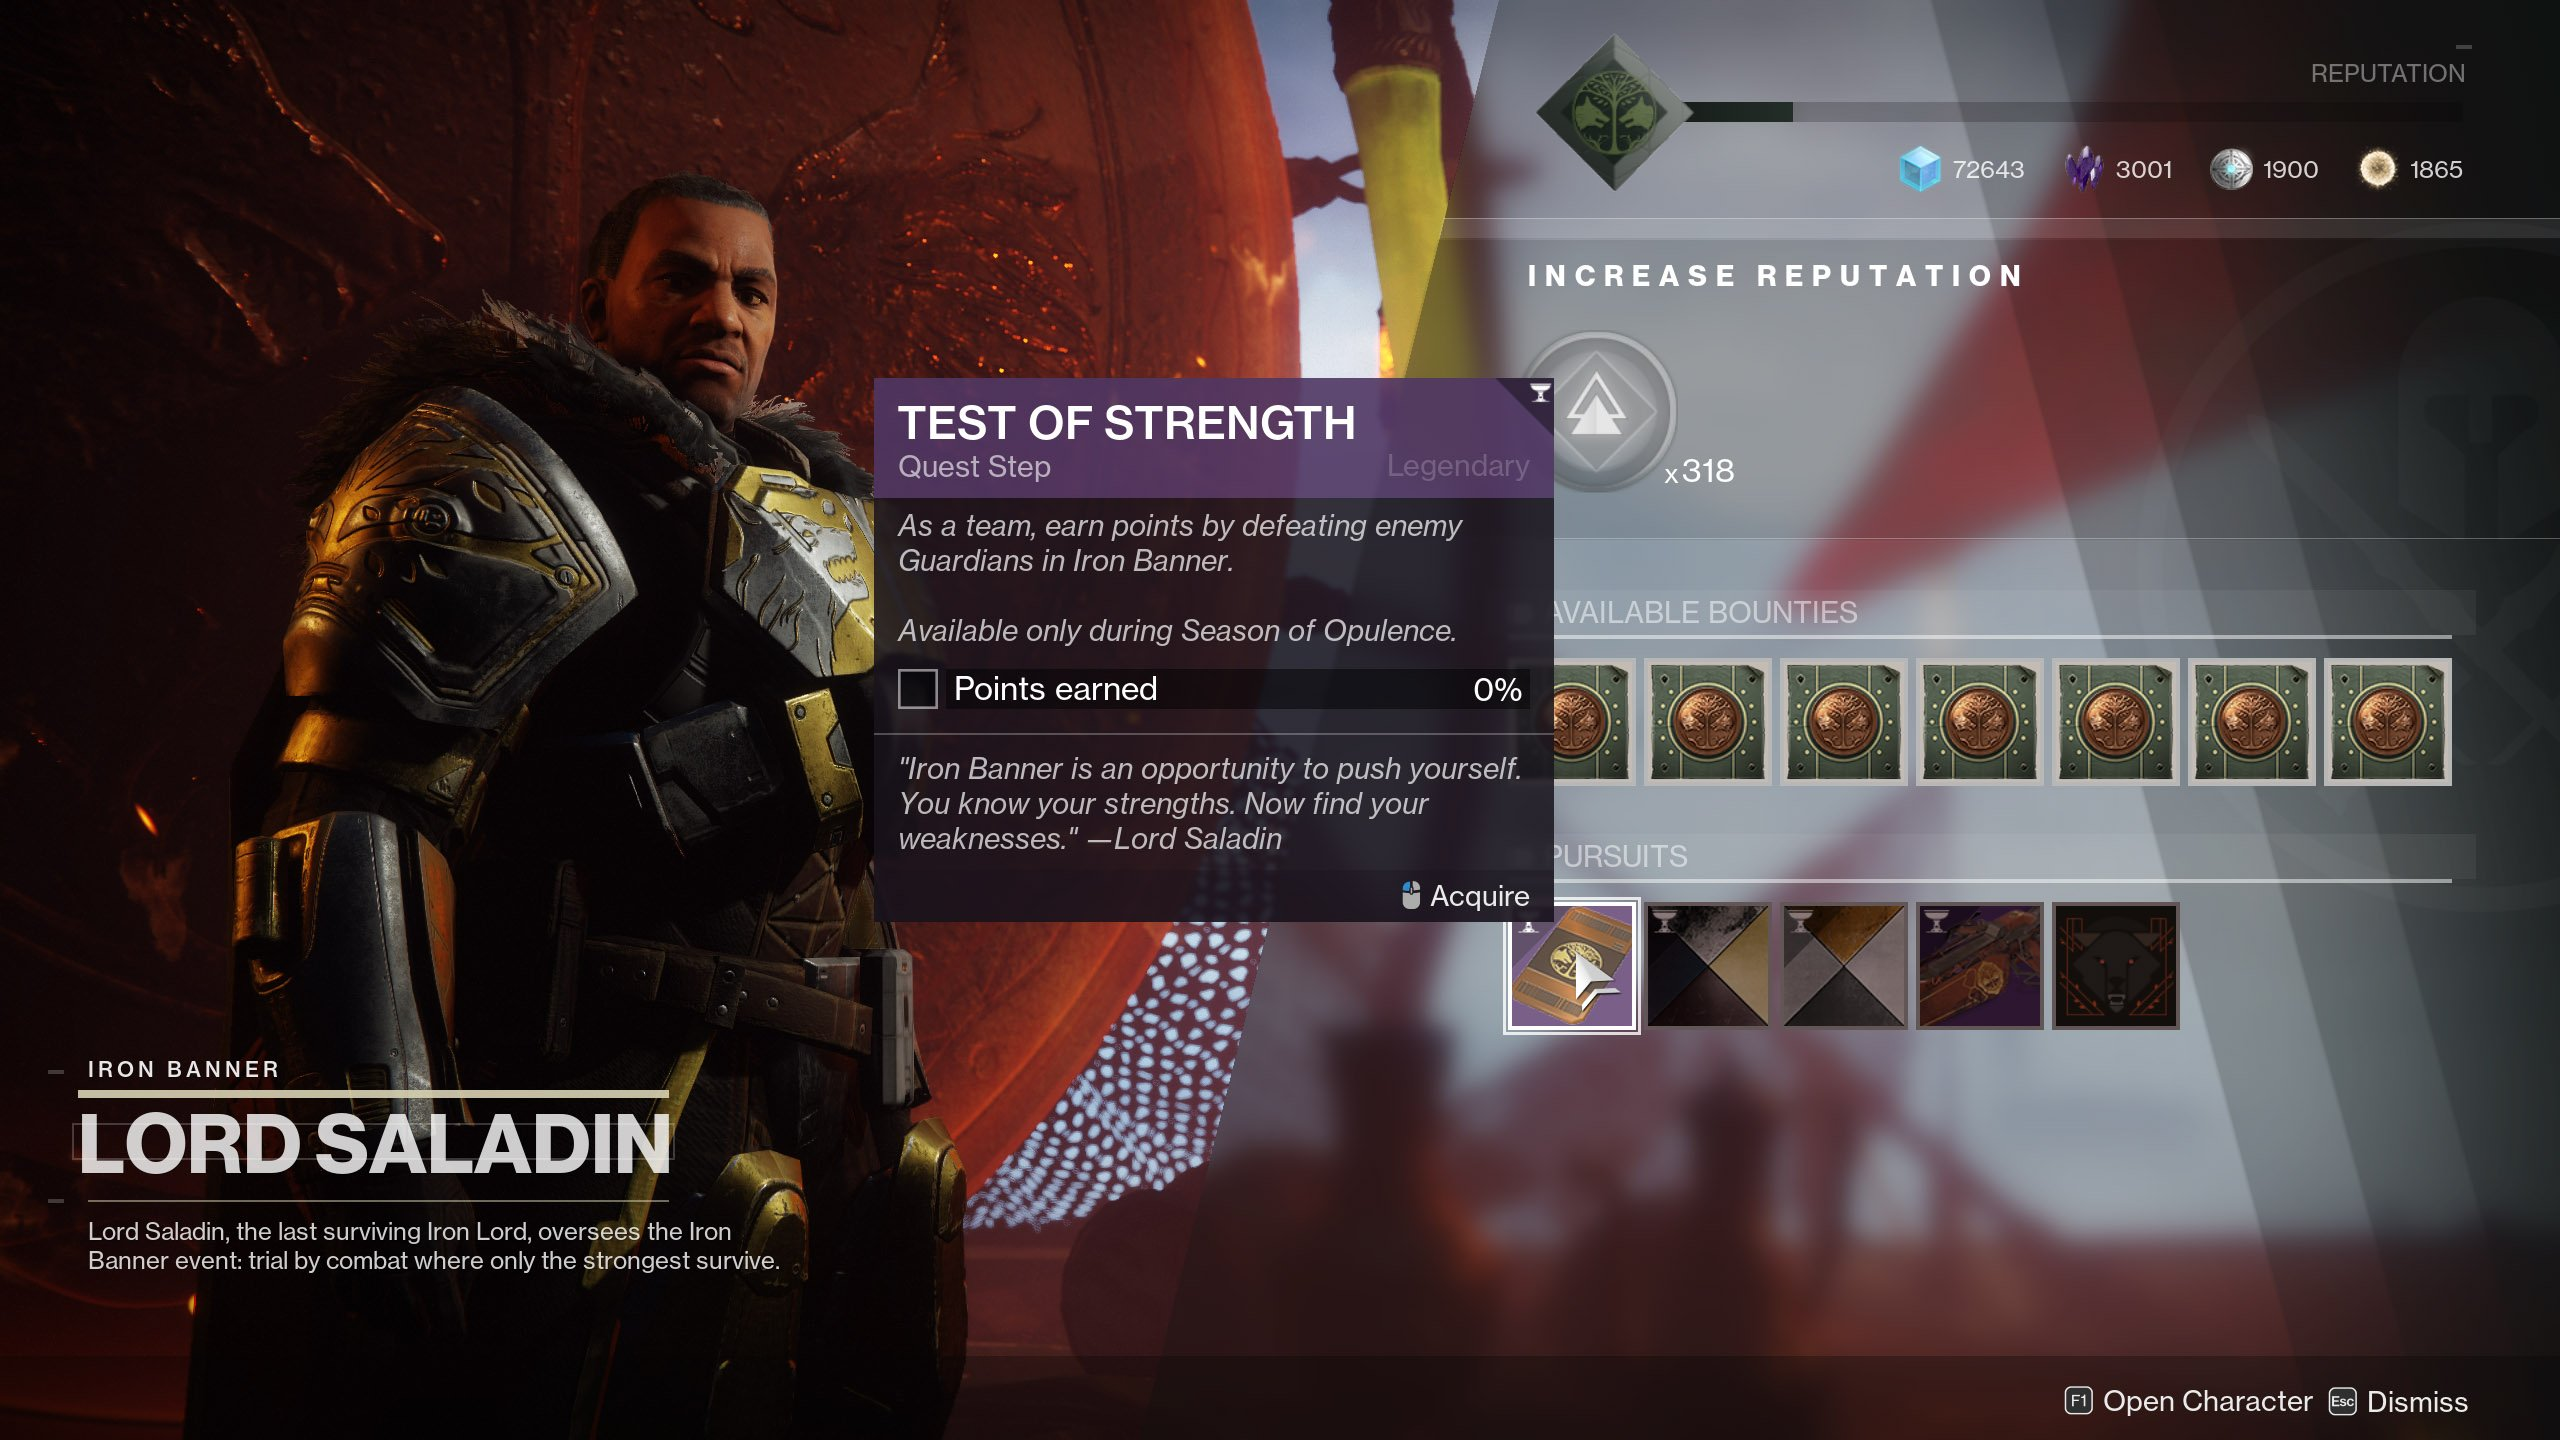 Test of Strength Quest Step Destiny 2